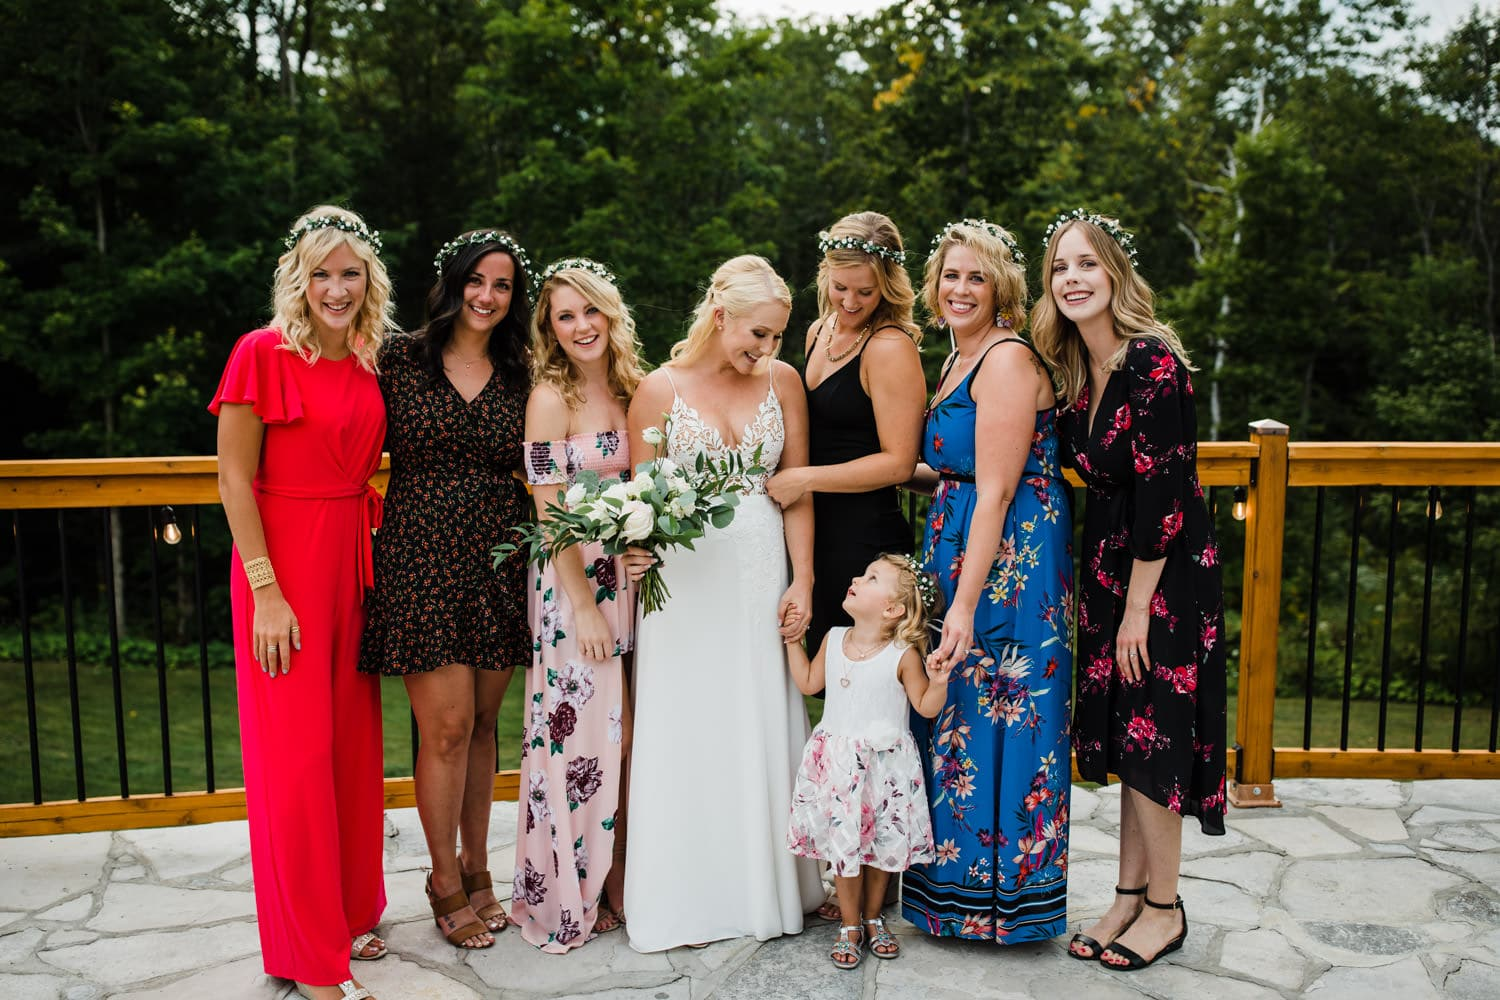 bride stands with her honorary bridesmaids after outdoor wedding